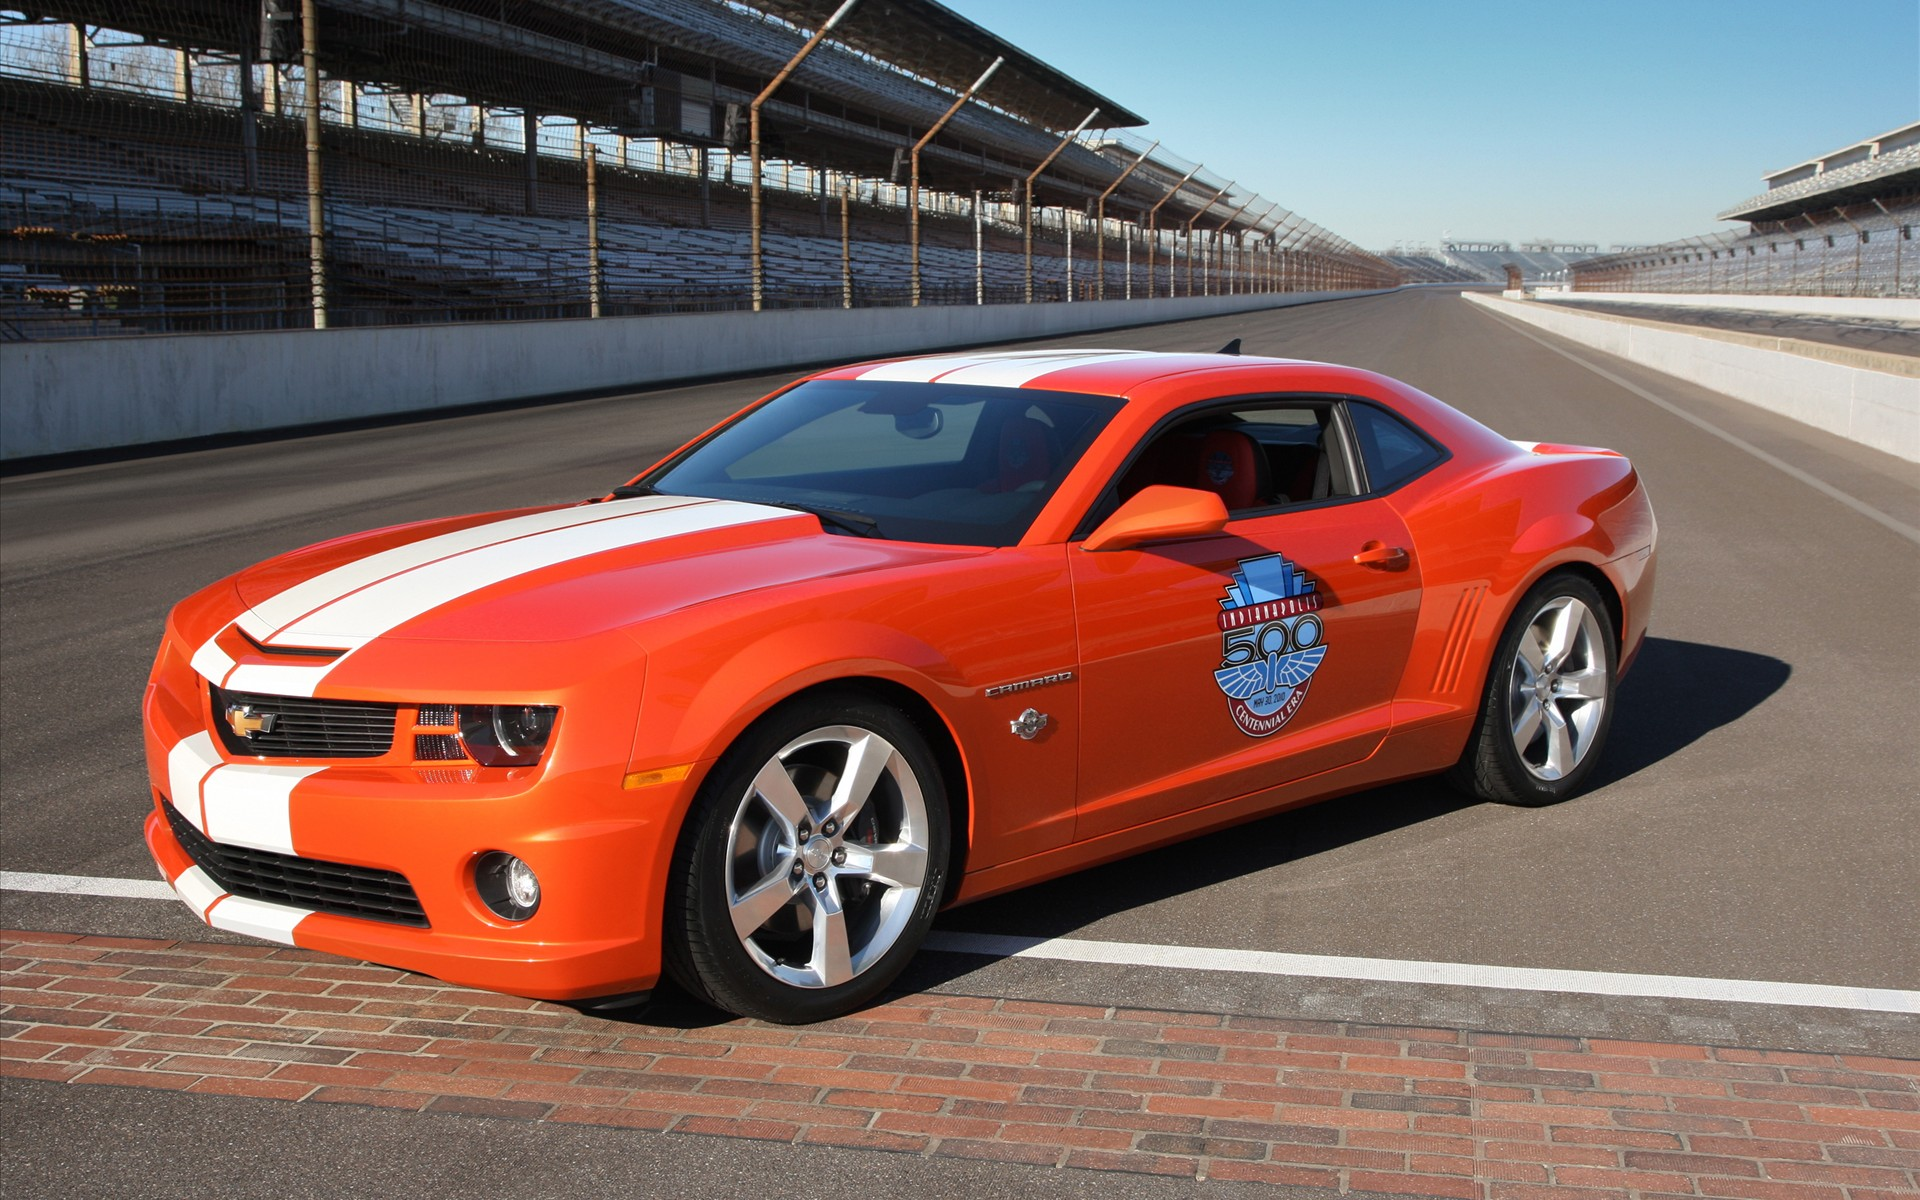 2010 Chevrolet Camaro SS Indianapolis Car 219.77 Kb